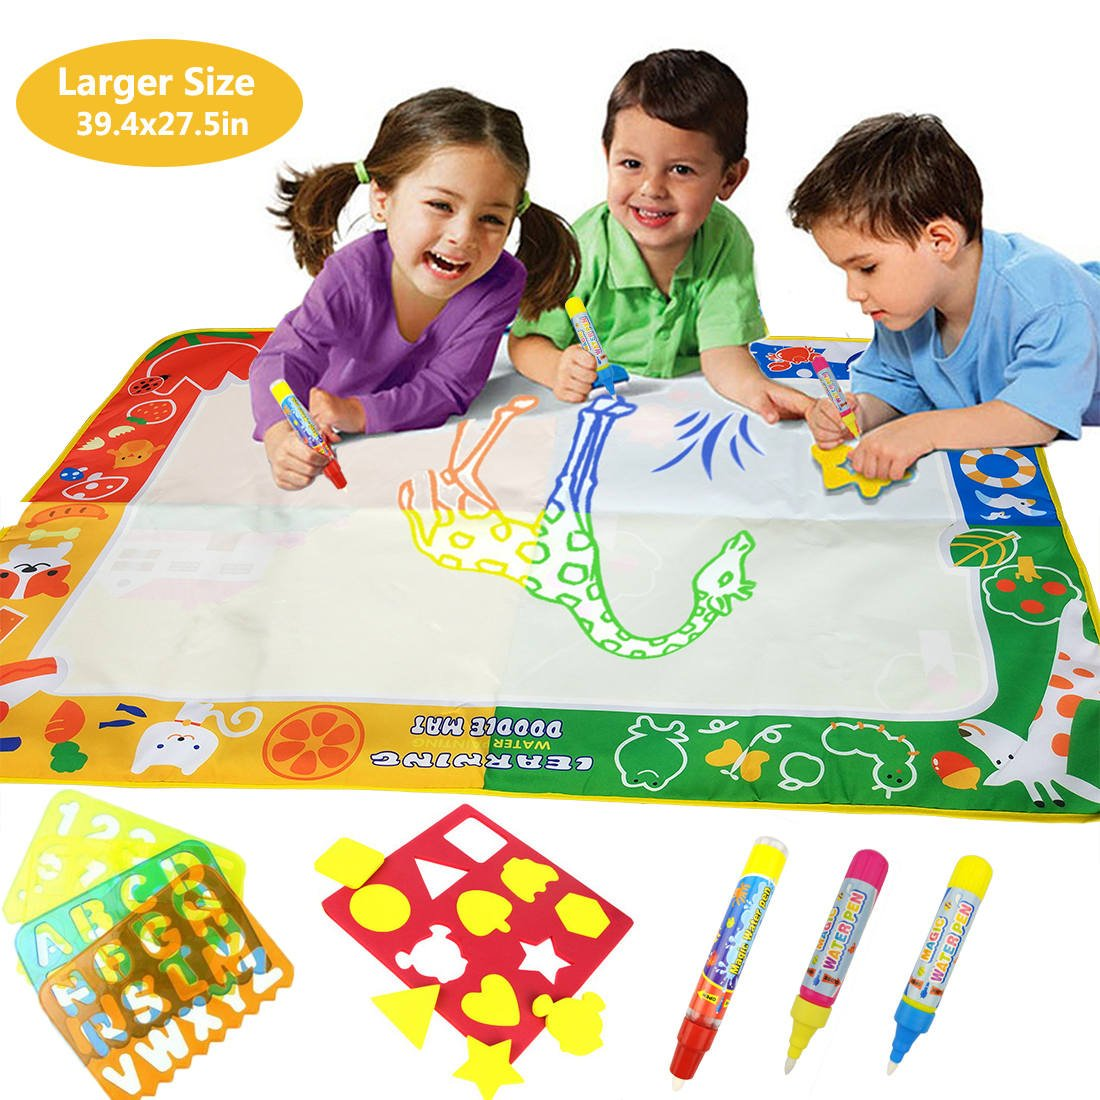 BaiFM Large Water Doodle Mat,Water Drawing Mat Pad,Aqua Magic Writing Mat with 3 Water Pens and 9 Molds and 49 Draw Templates,Kids Toddlers Girls Boys Educational Travel Toy Gift Size 39.4'' X 27.5''